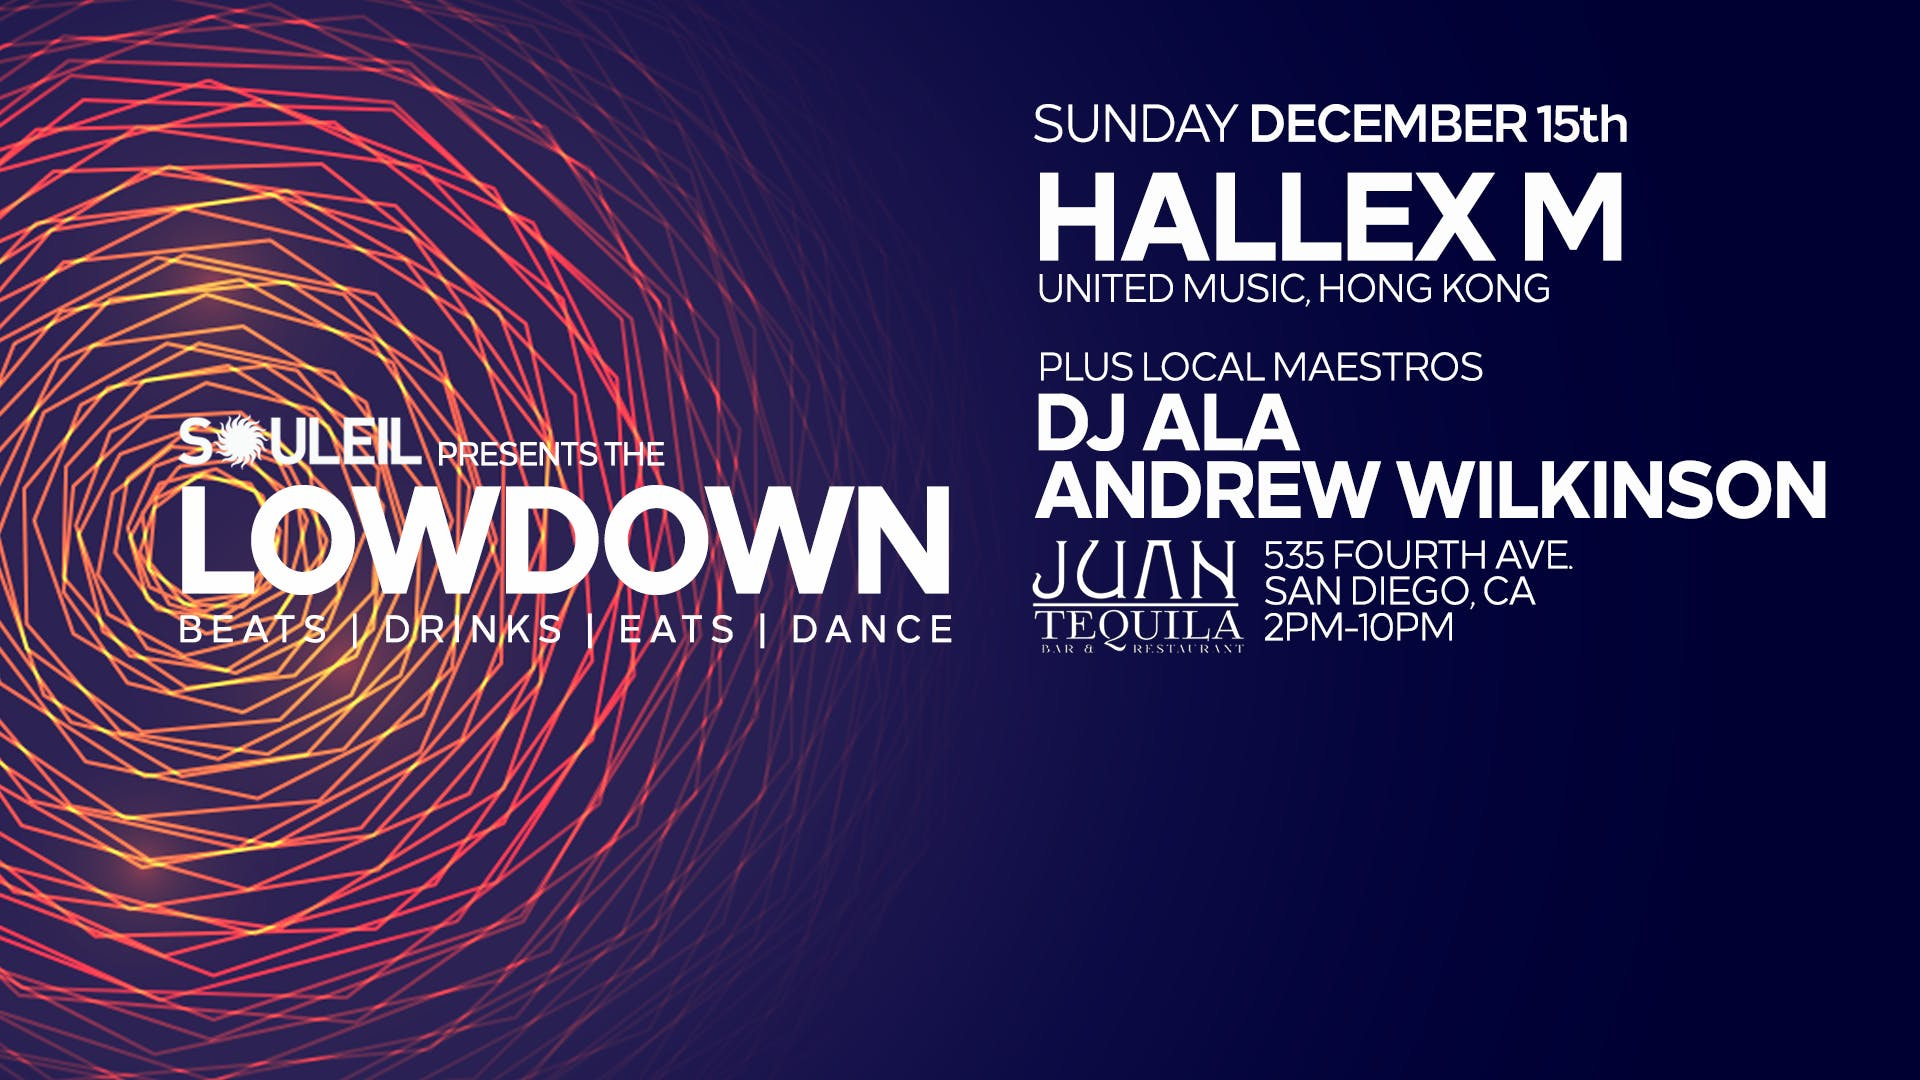 Souleil presents The Lowdown with Hallex M